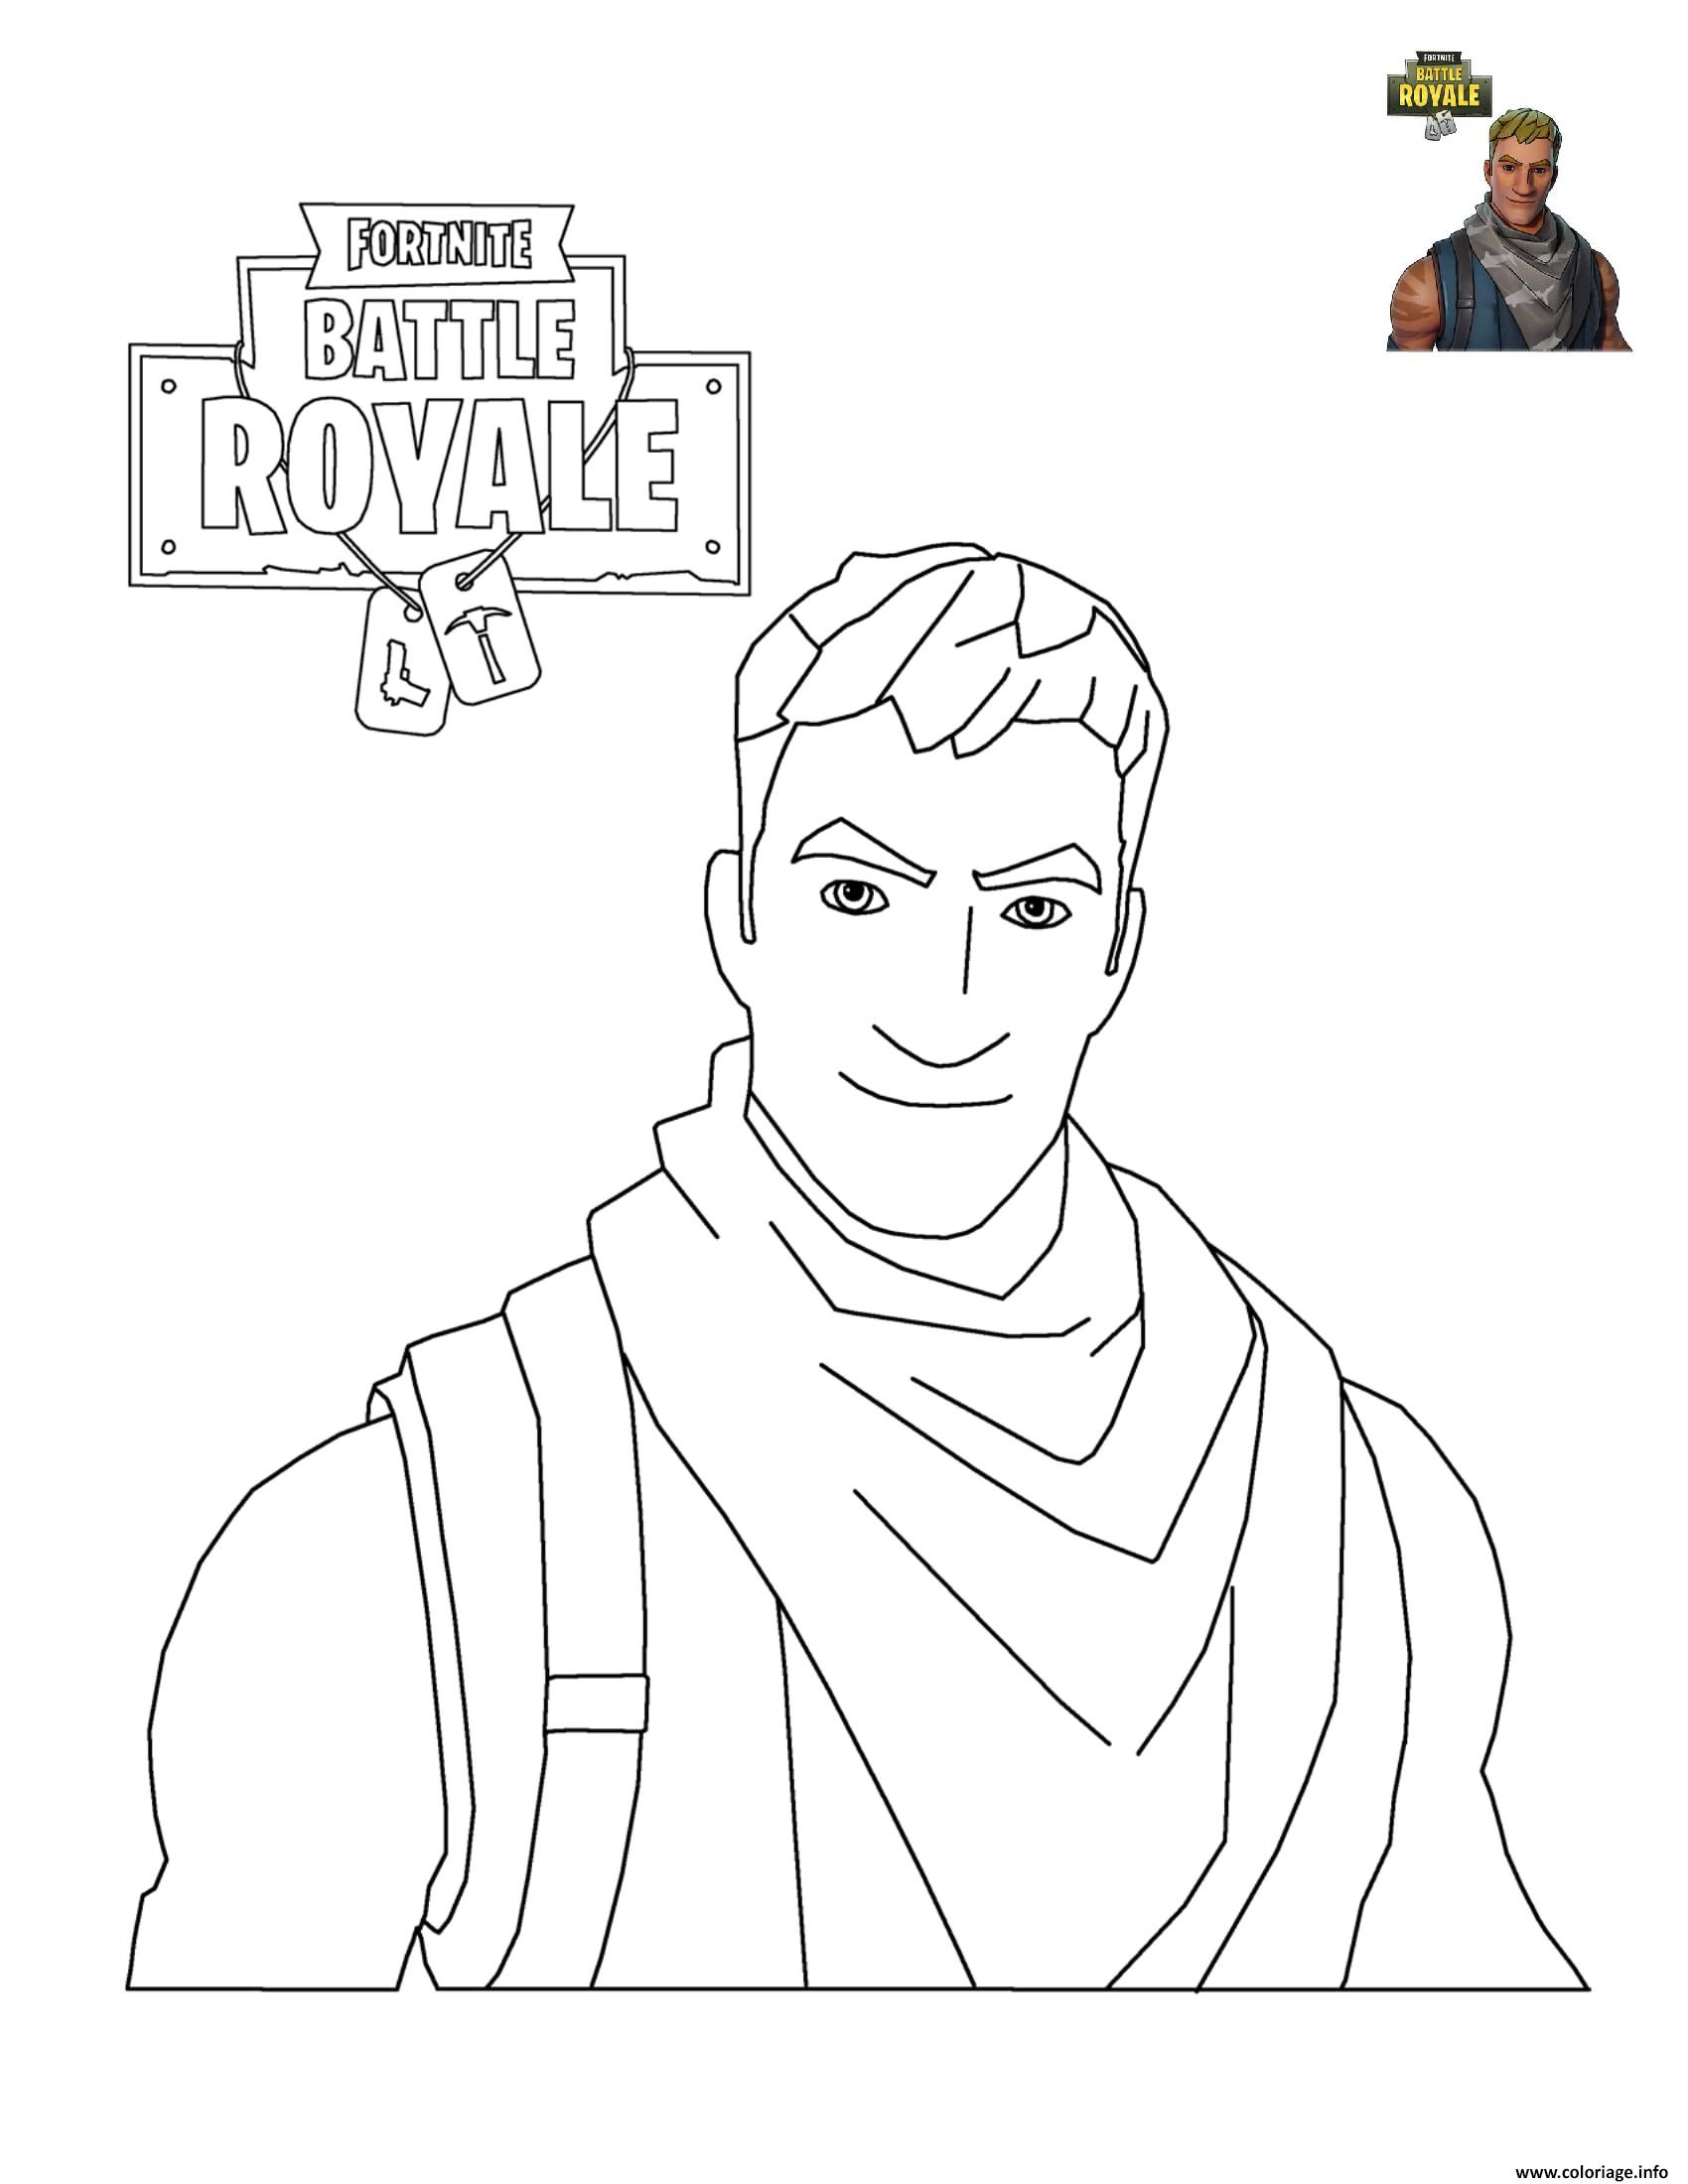 Coloriage Fortnite Battle Royale Personnage 3 Dessin à Coloriage A Imprimer Fortnite